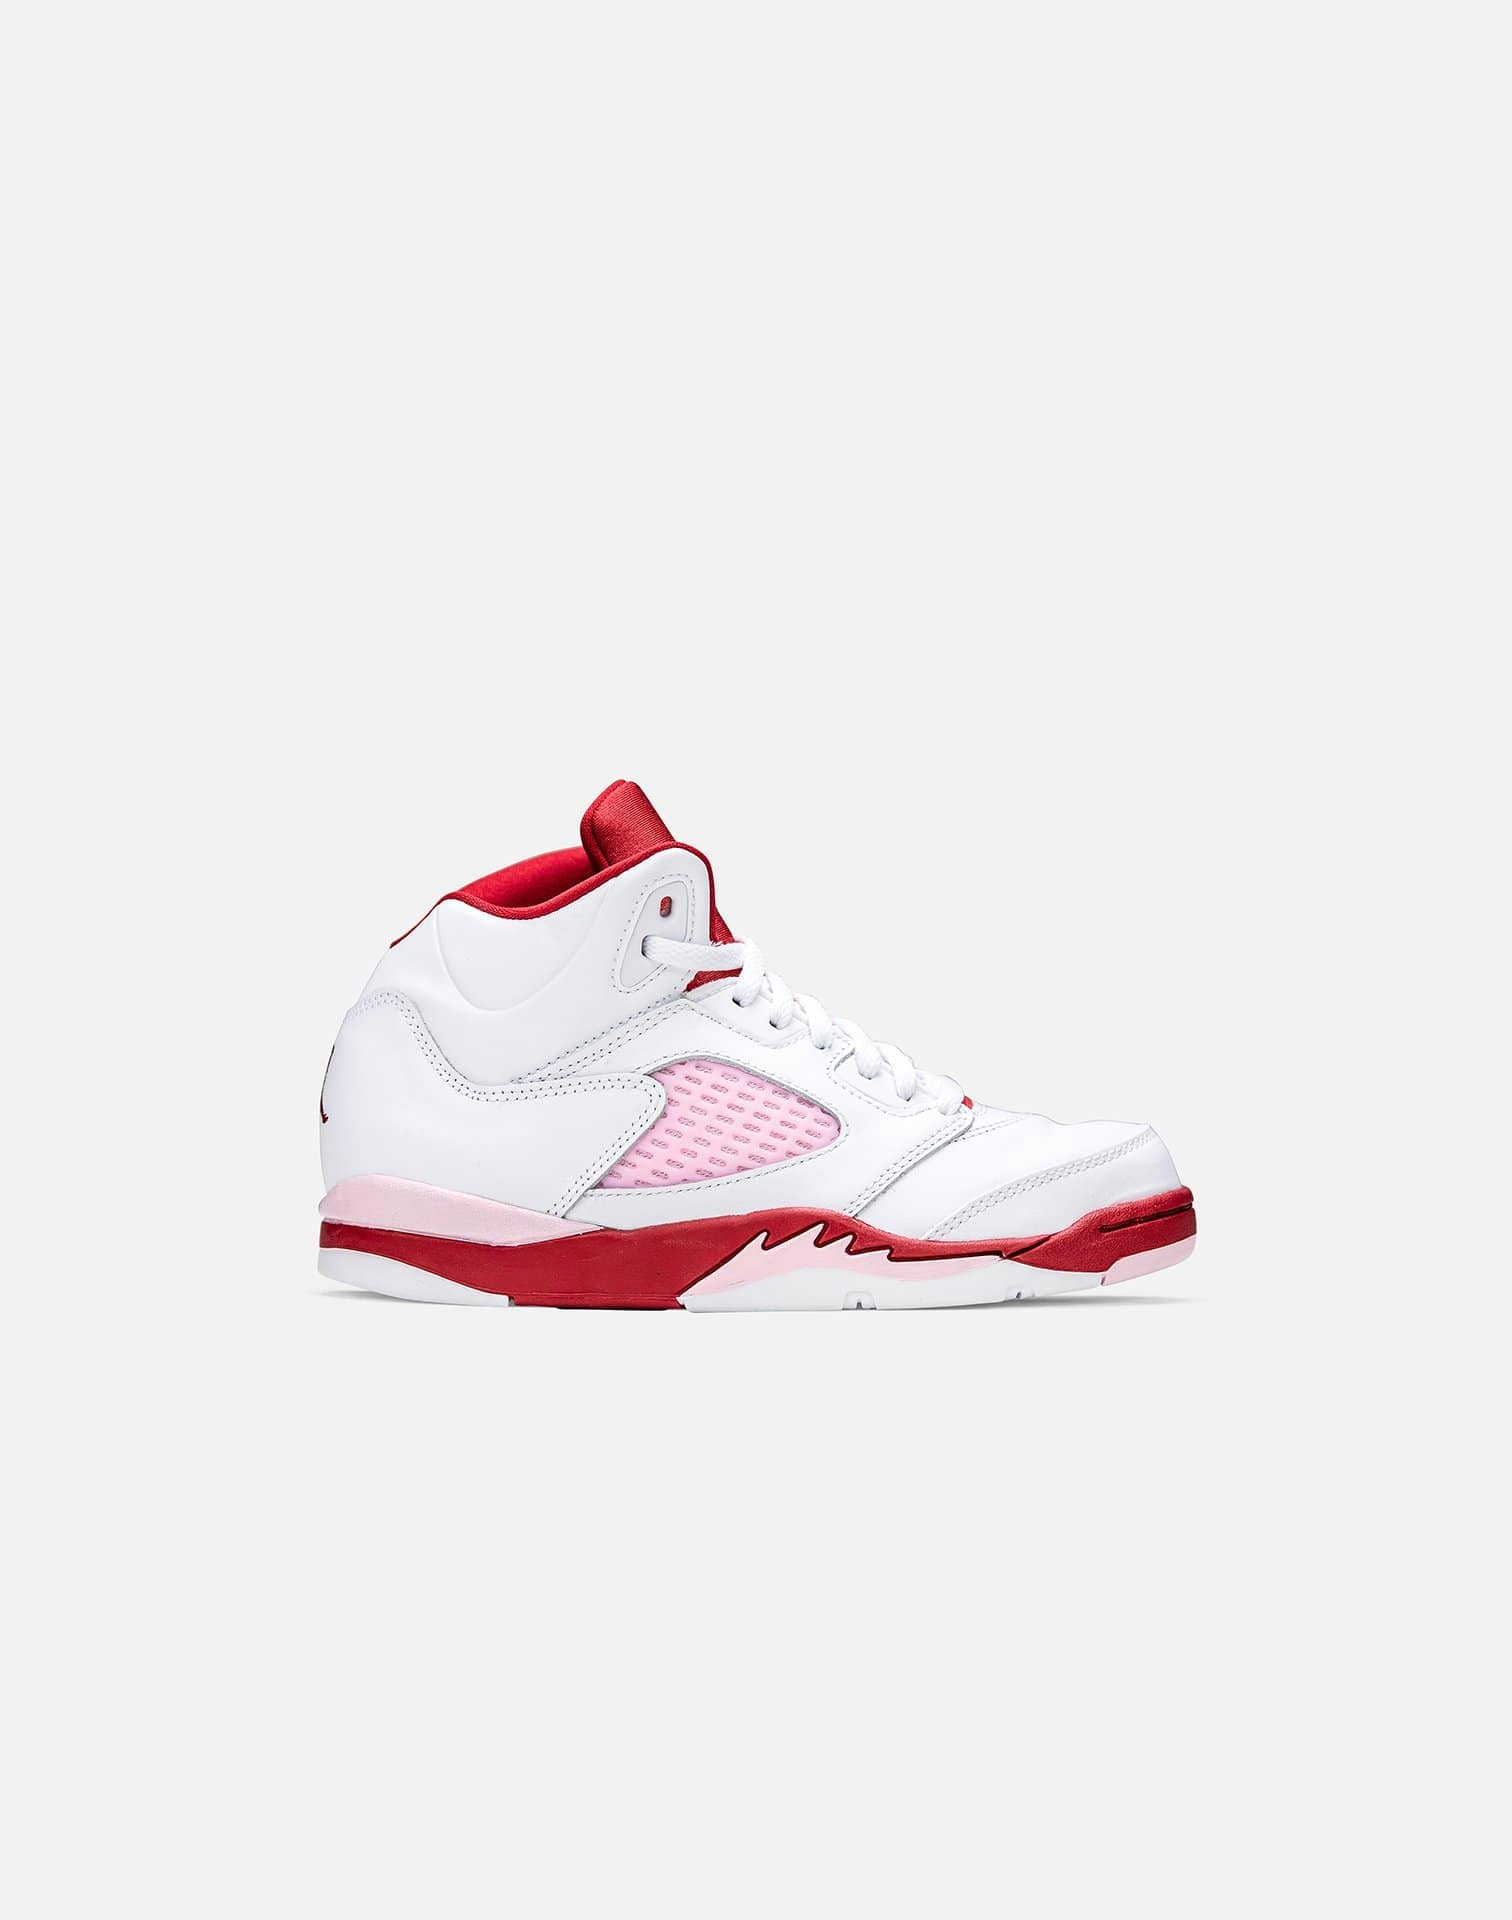 Jordan AIR JORDAN RETRO 5 KSA PRE-SCHOOL